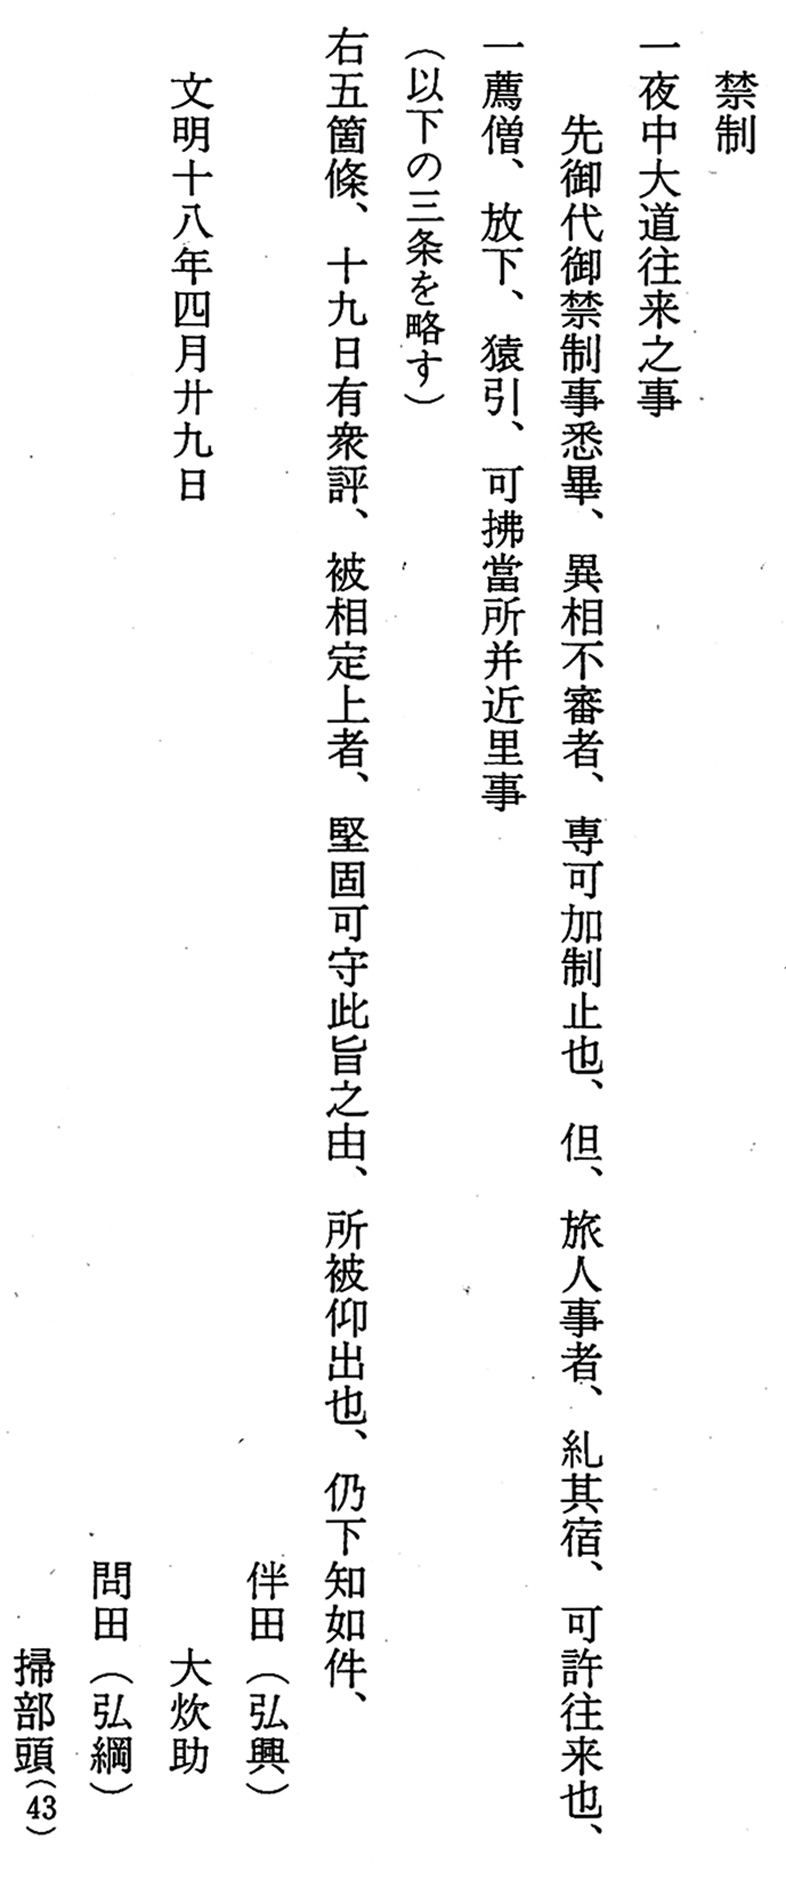 The 1486 Ōuchi Clan's ban on komosō and others